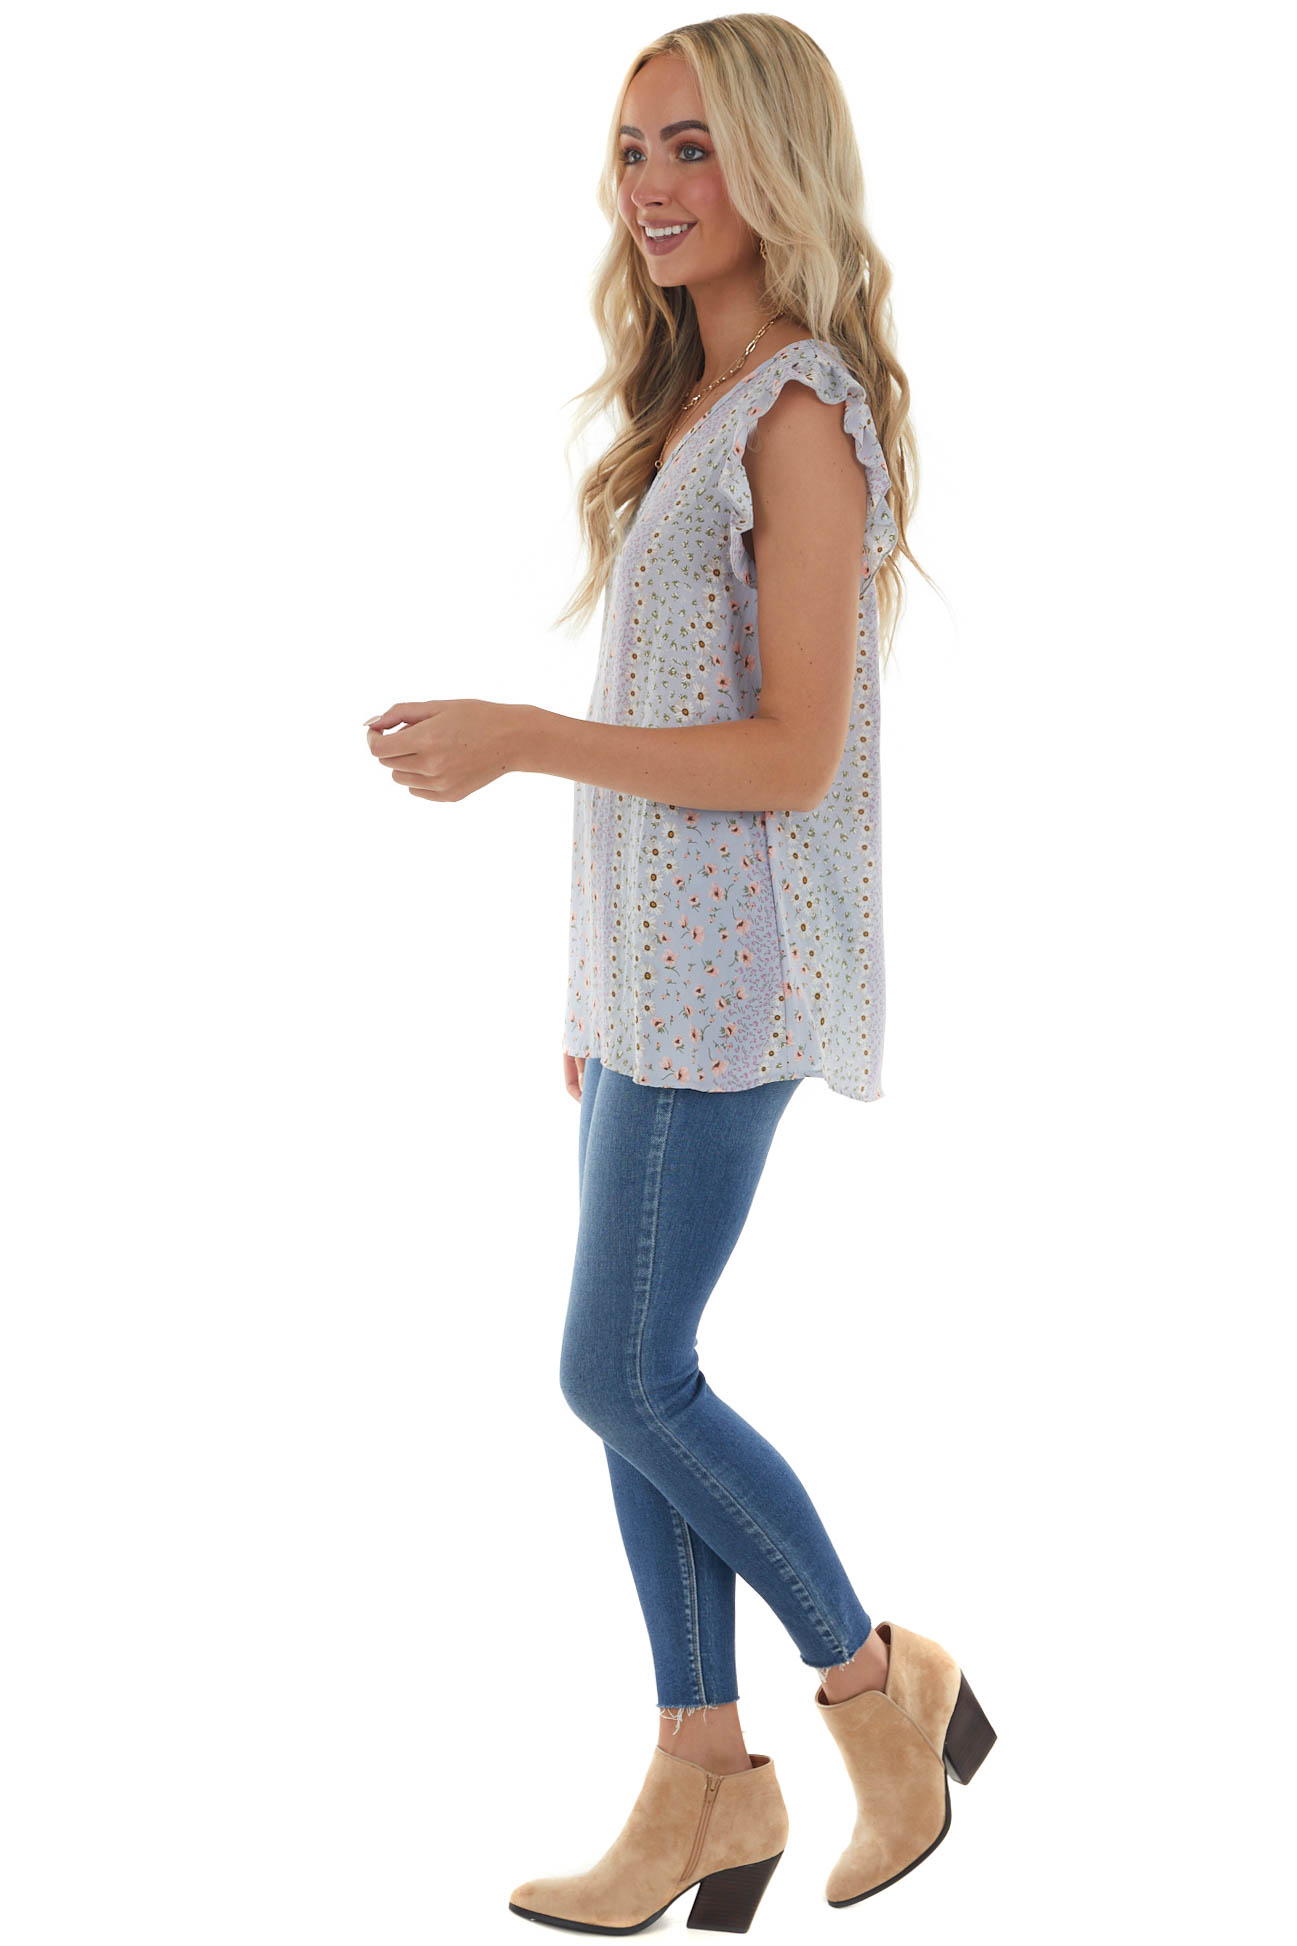 Periwinkle Floral Blouse with Ruffled Sleeves